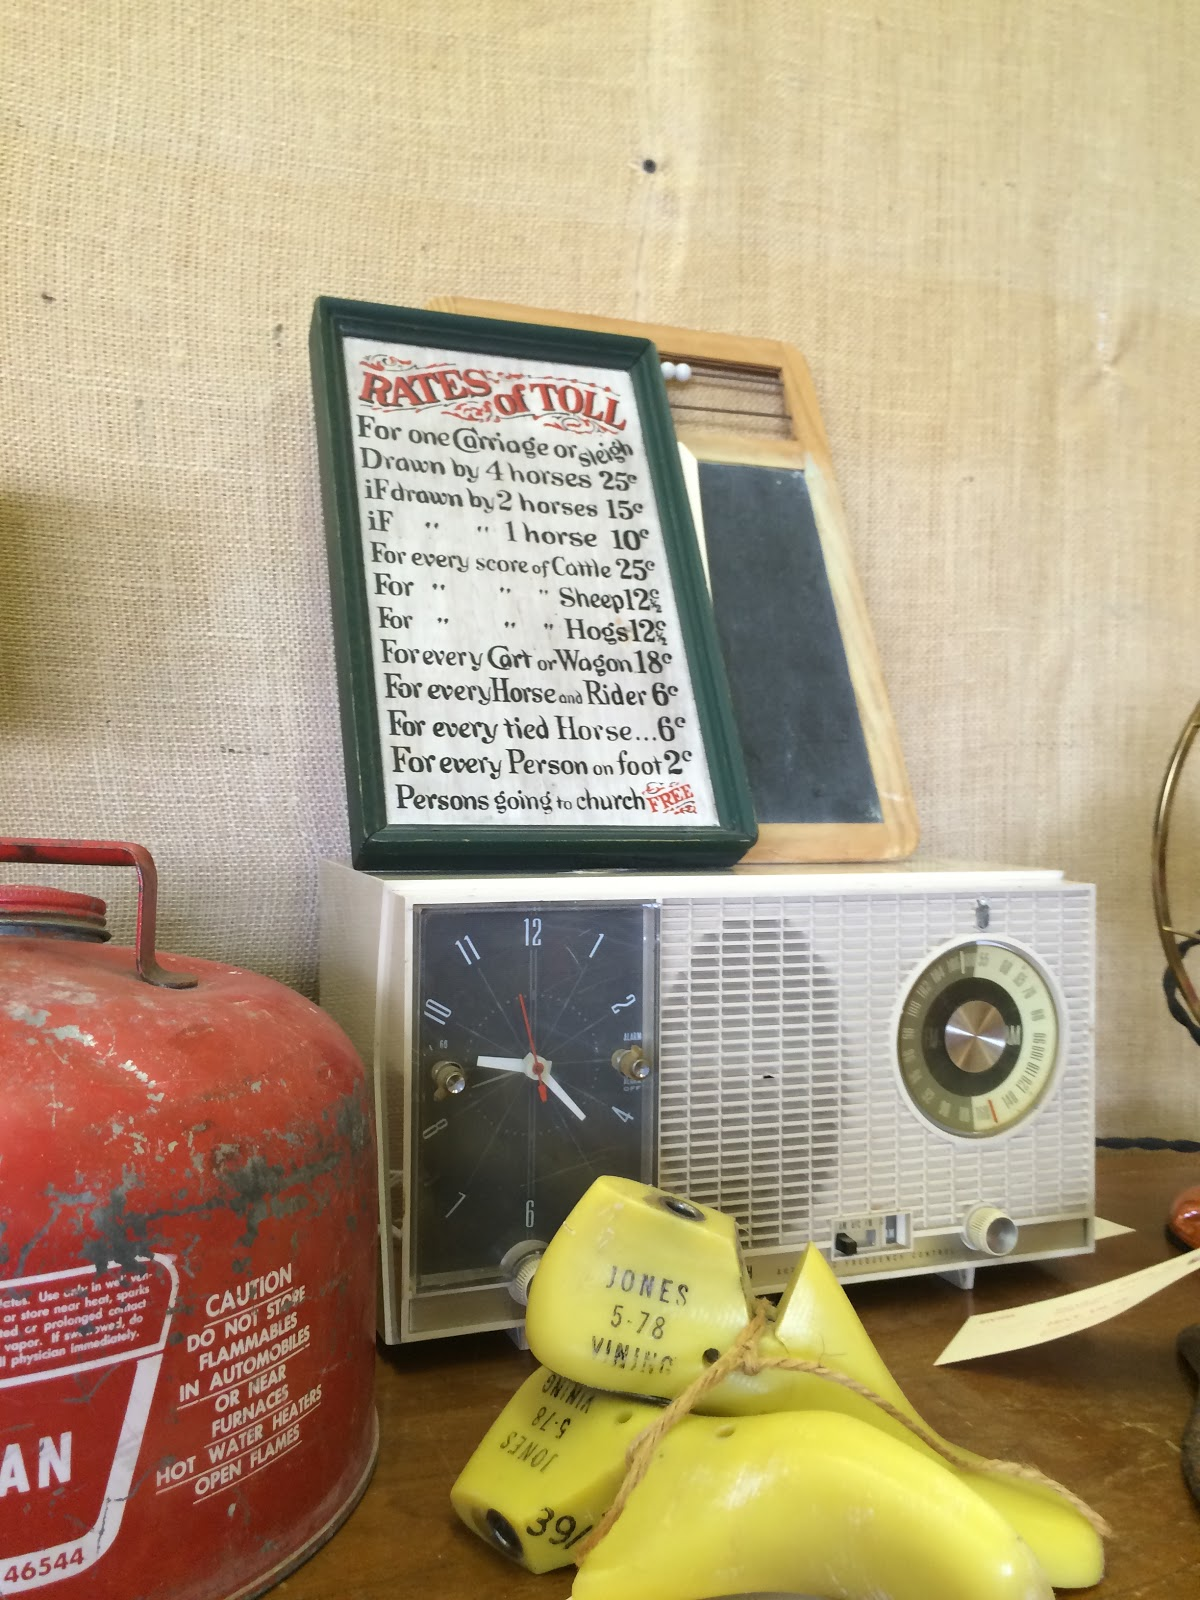 Starlite Vintiqs at Mid-Cities Antique Mall